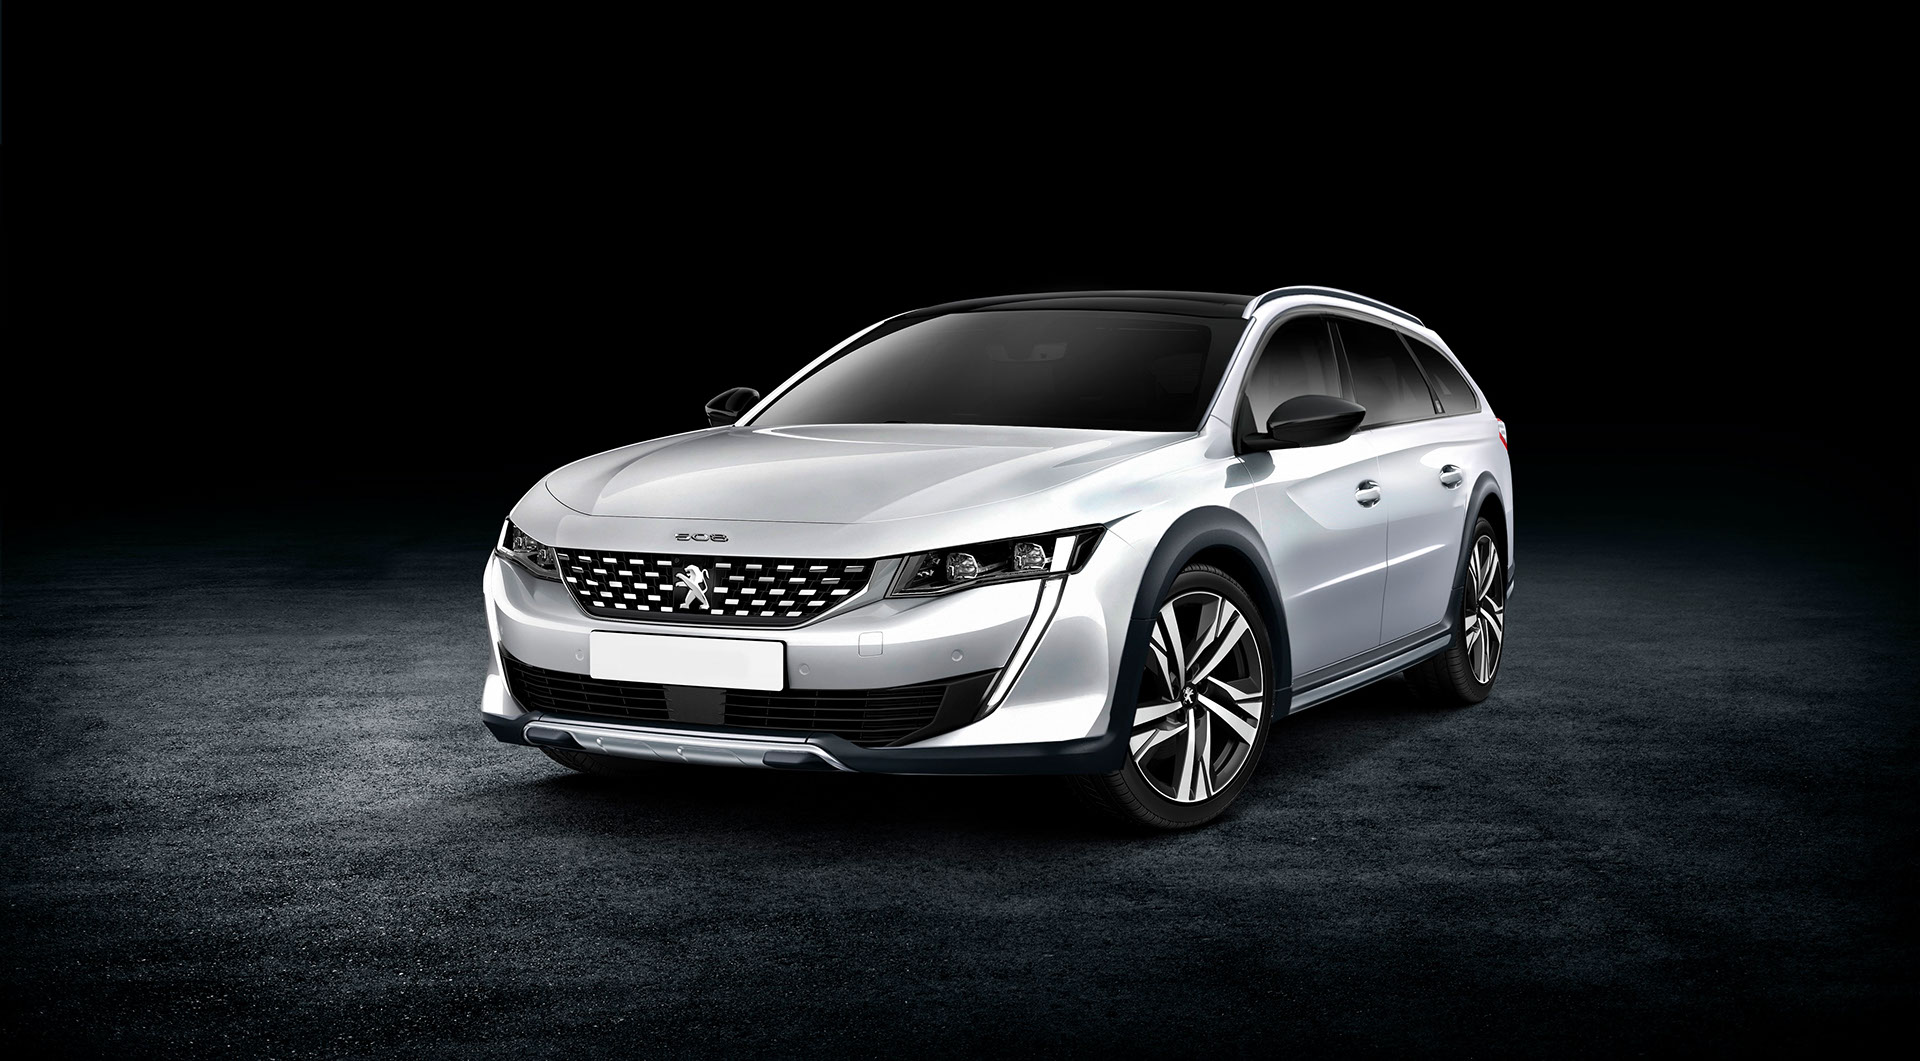 peugeot-508-all-new-sw-render-2